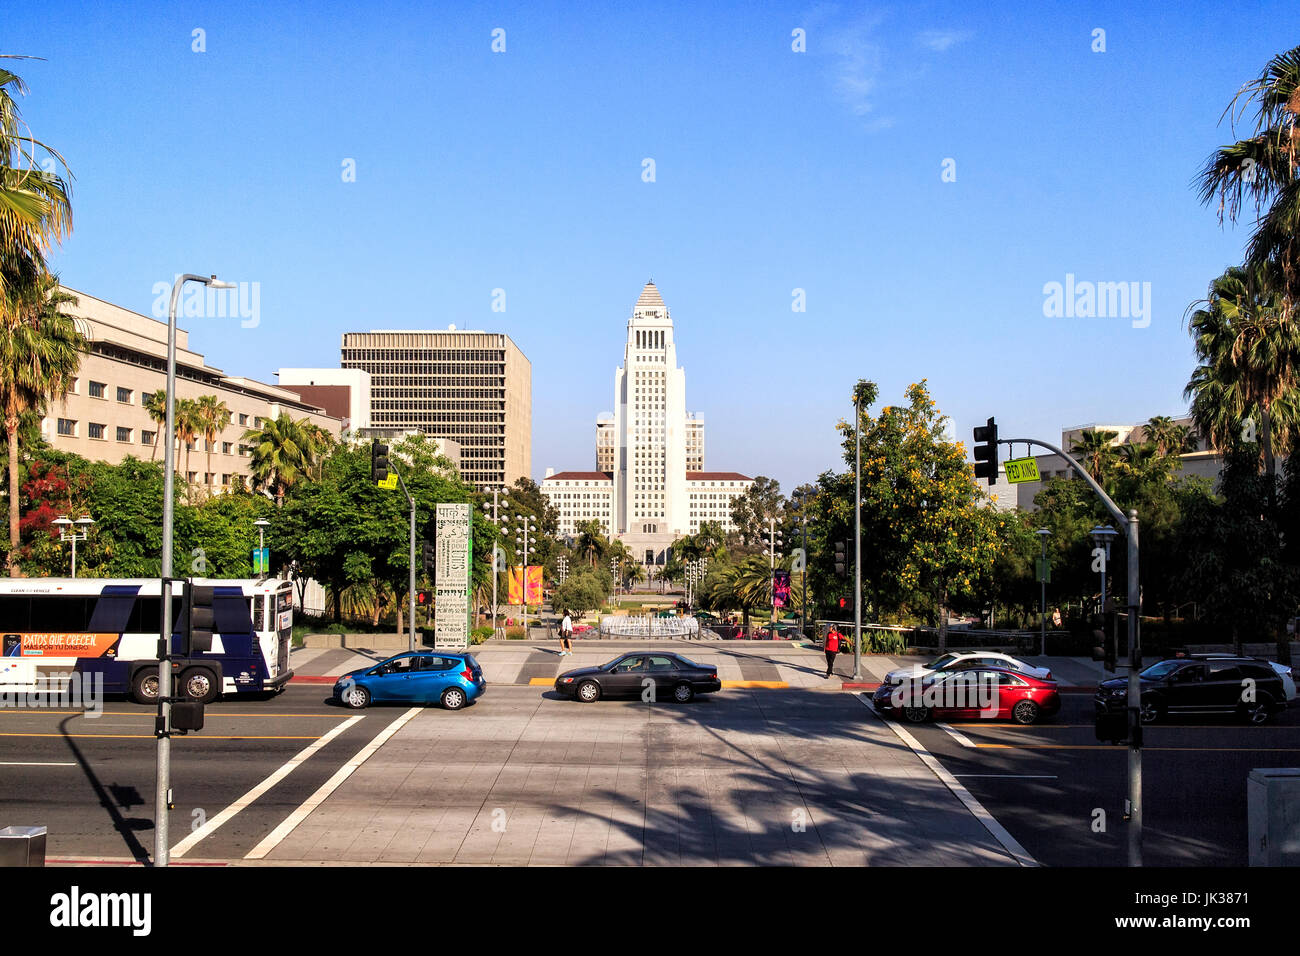 Los Angeles City Hall, Downtown LA, California - Stock Image